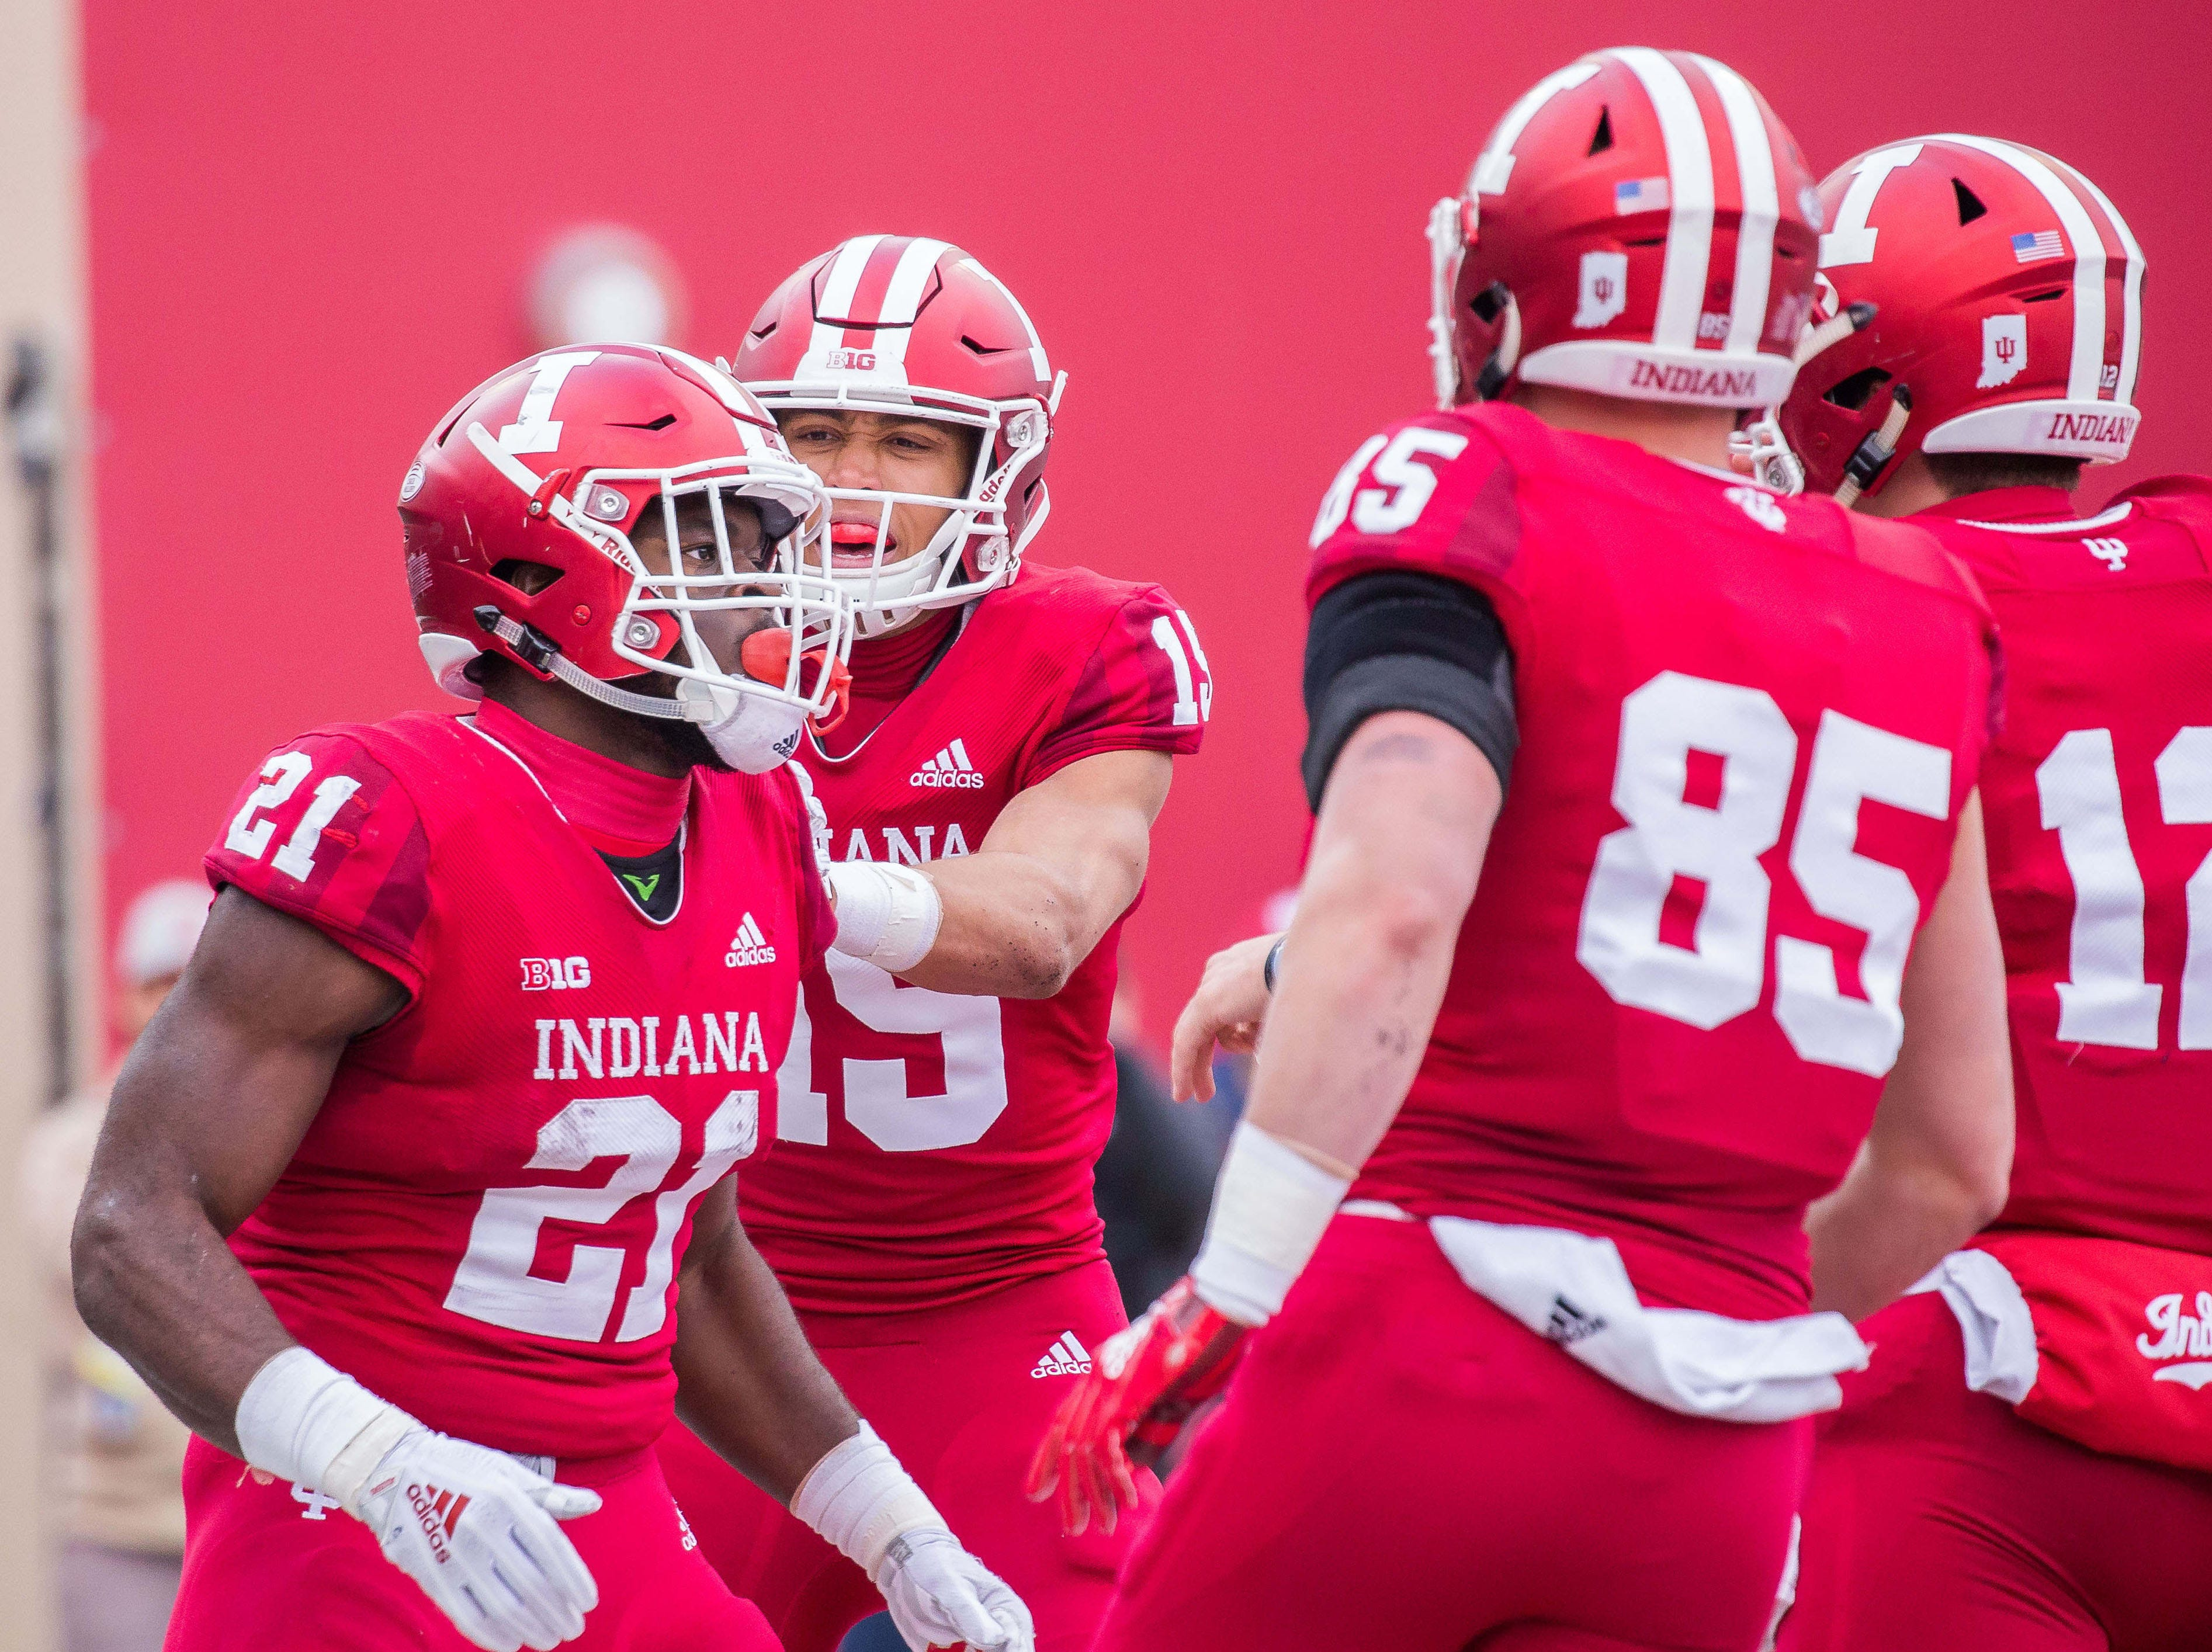 Indiana Hoosiers running back Stevie Scott (21) celebrates with teammates after scoring a touchdown in the second quarter against the Purdue Boilermakers at Memorial Stadium.